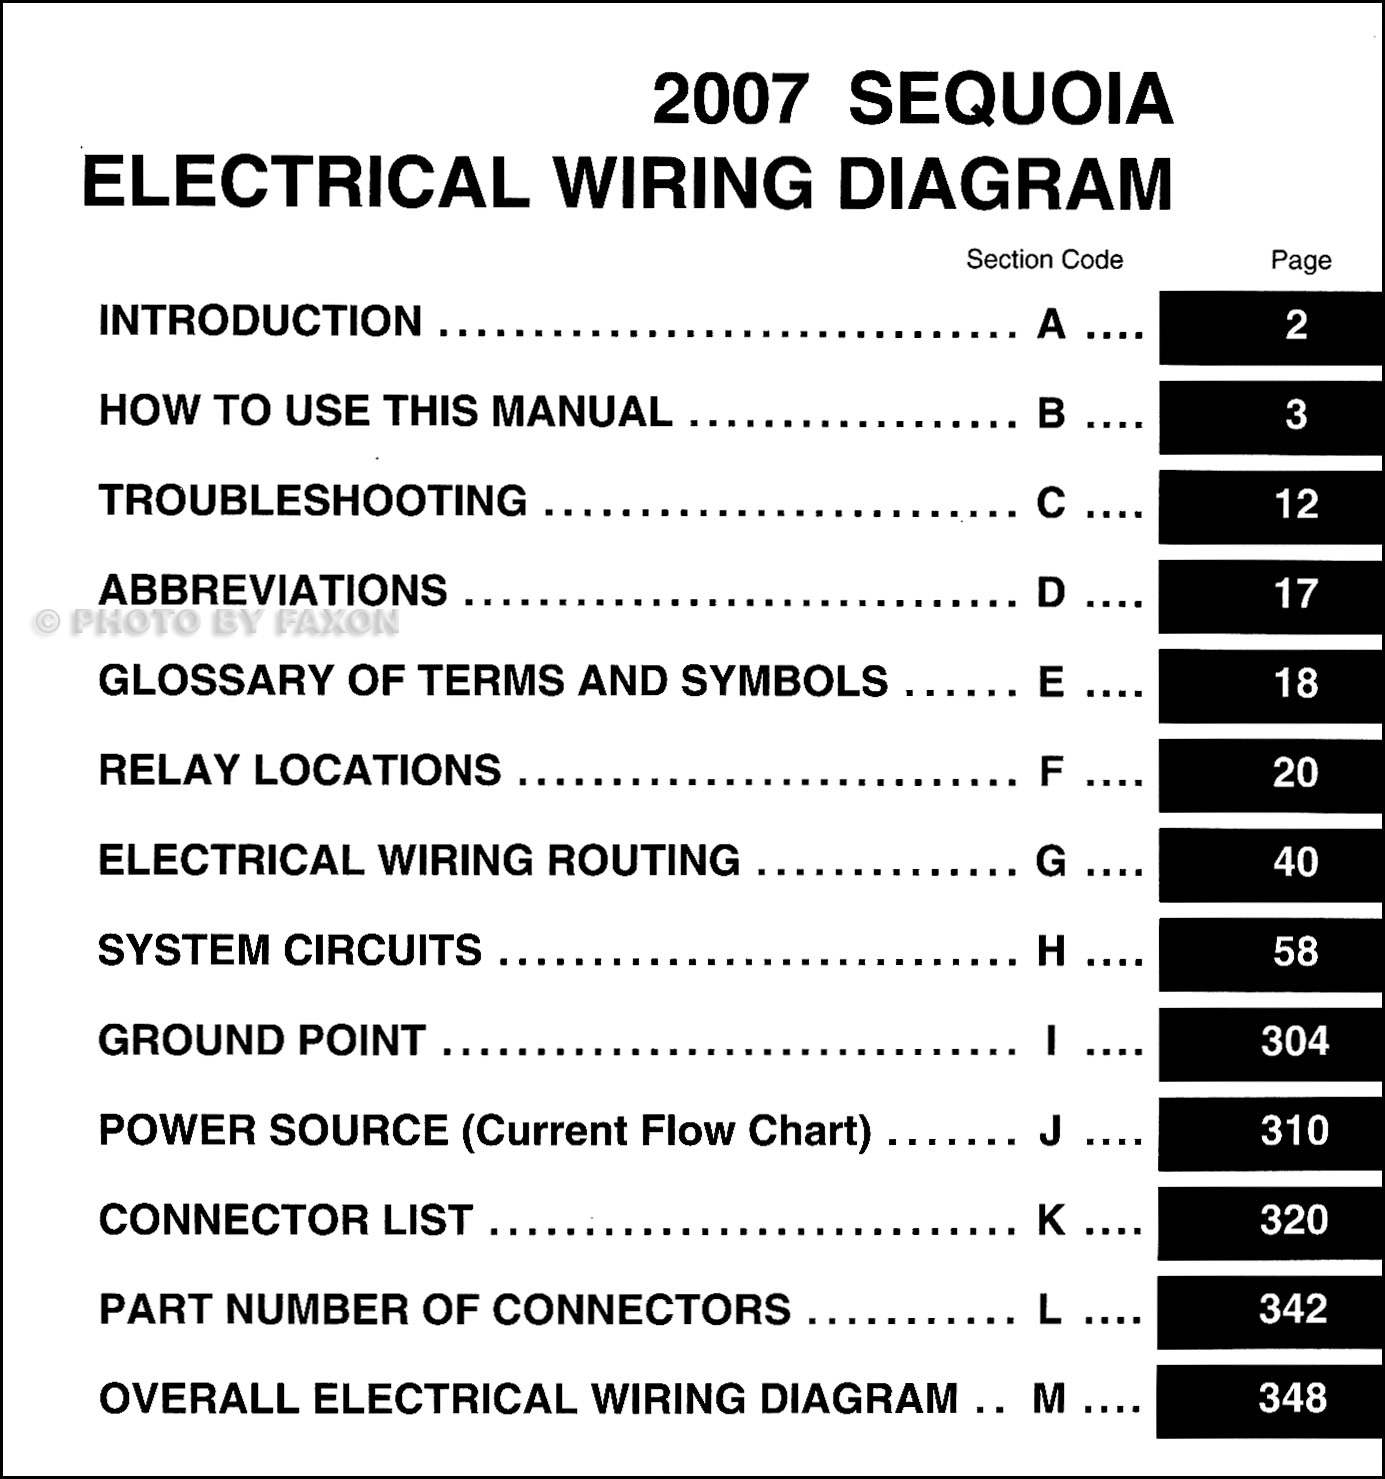 2007 Toyota Sequoia Wiring Diagram Manual Original | 2014 Toyota Sequoia Wiring Diagram |  | Faxon Auto Literature